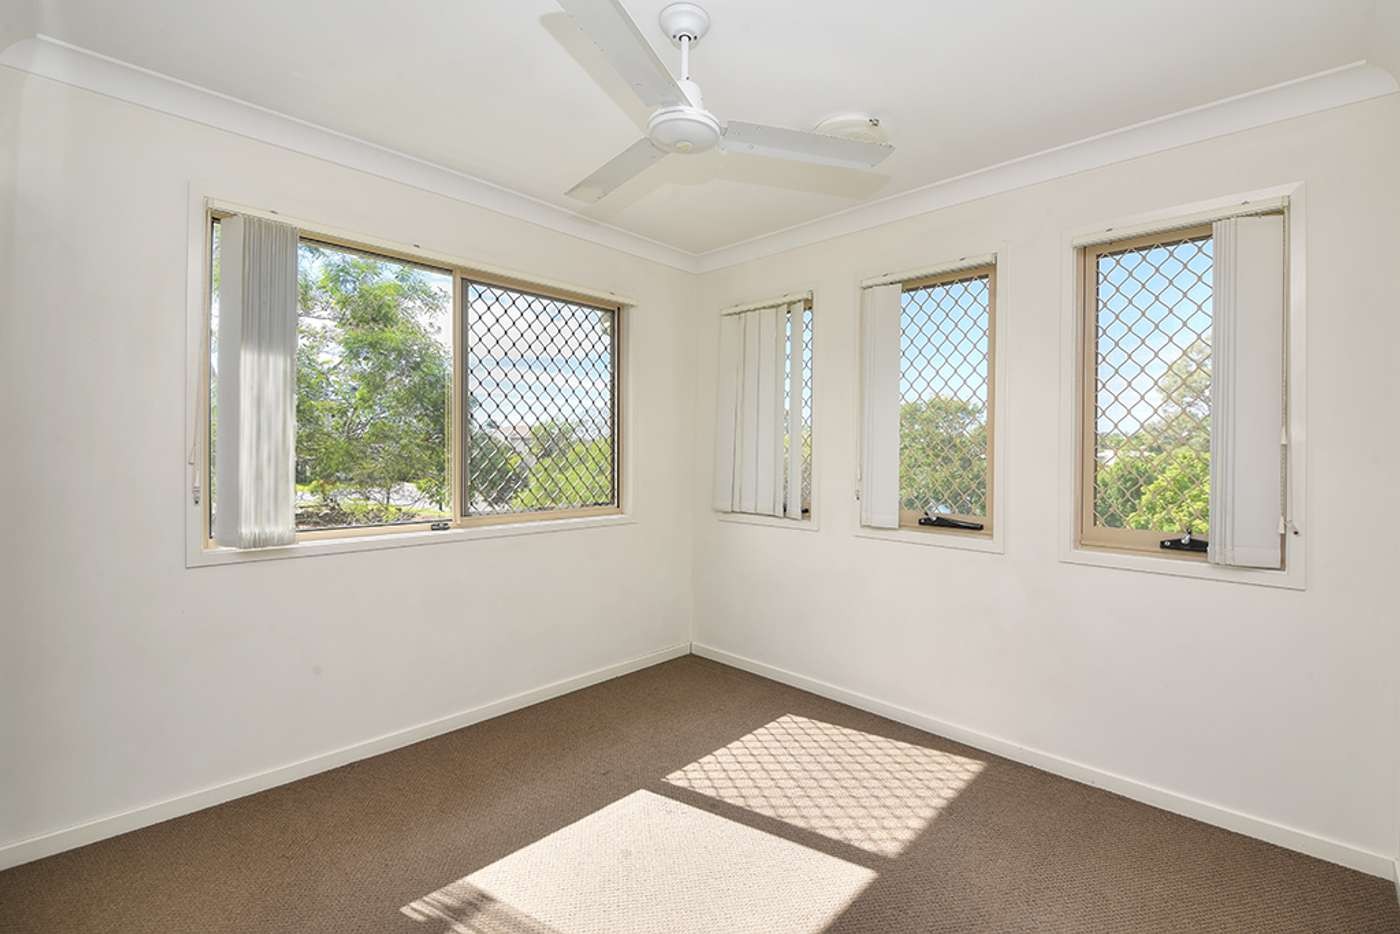 Sixth view of Homely house listing, 1 Laura Place, Varsity Lakes QLD 4227